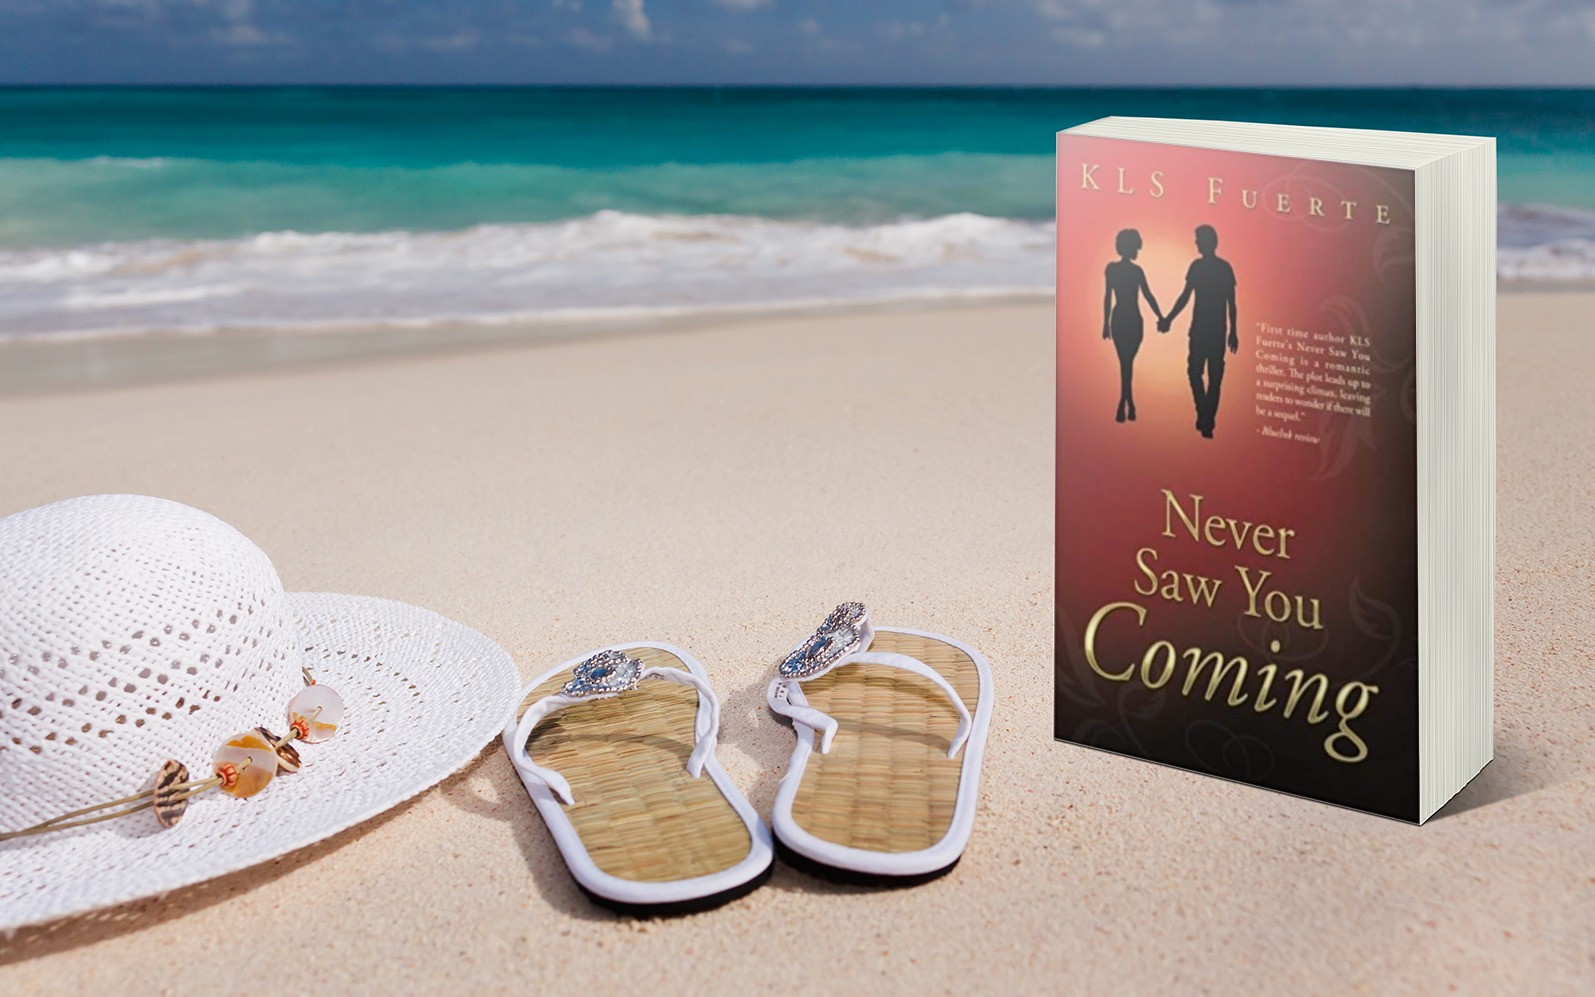 NEVER SAW YOU COMING - Love starts with You- KLS Fuerte